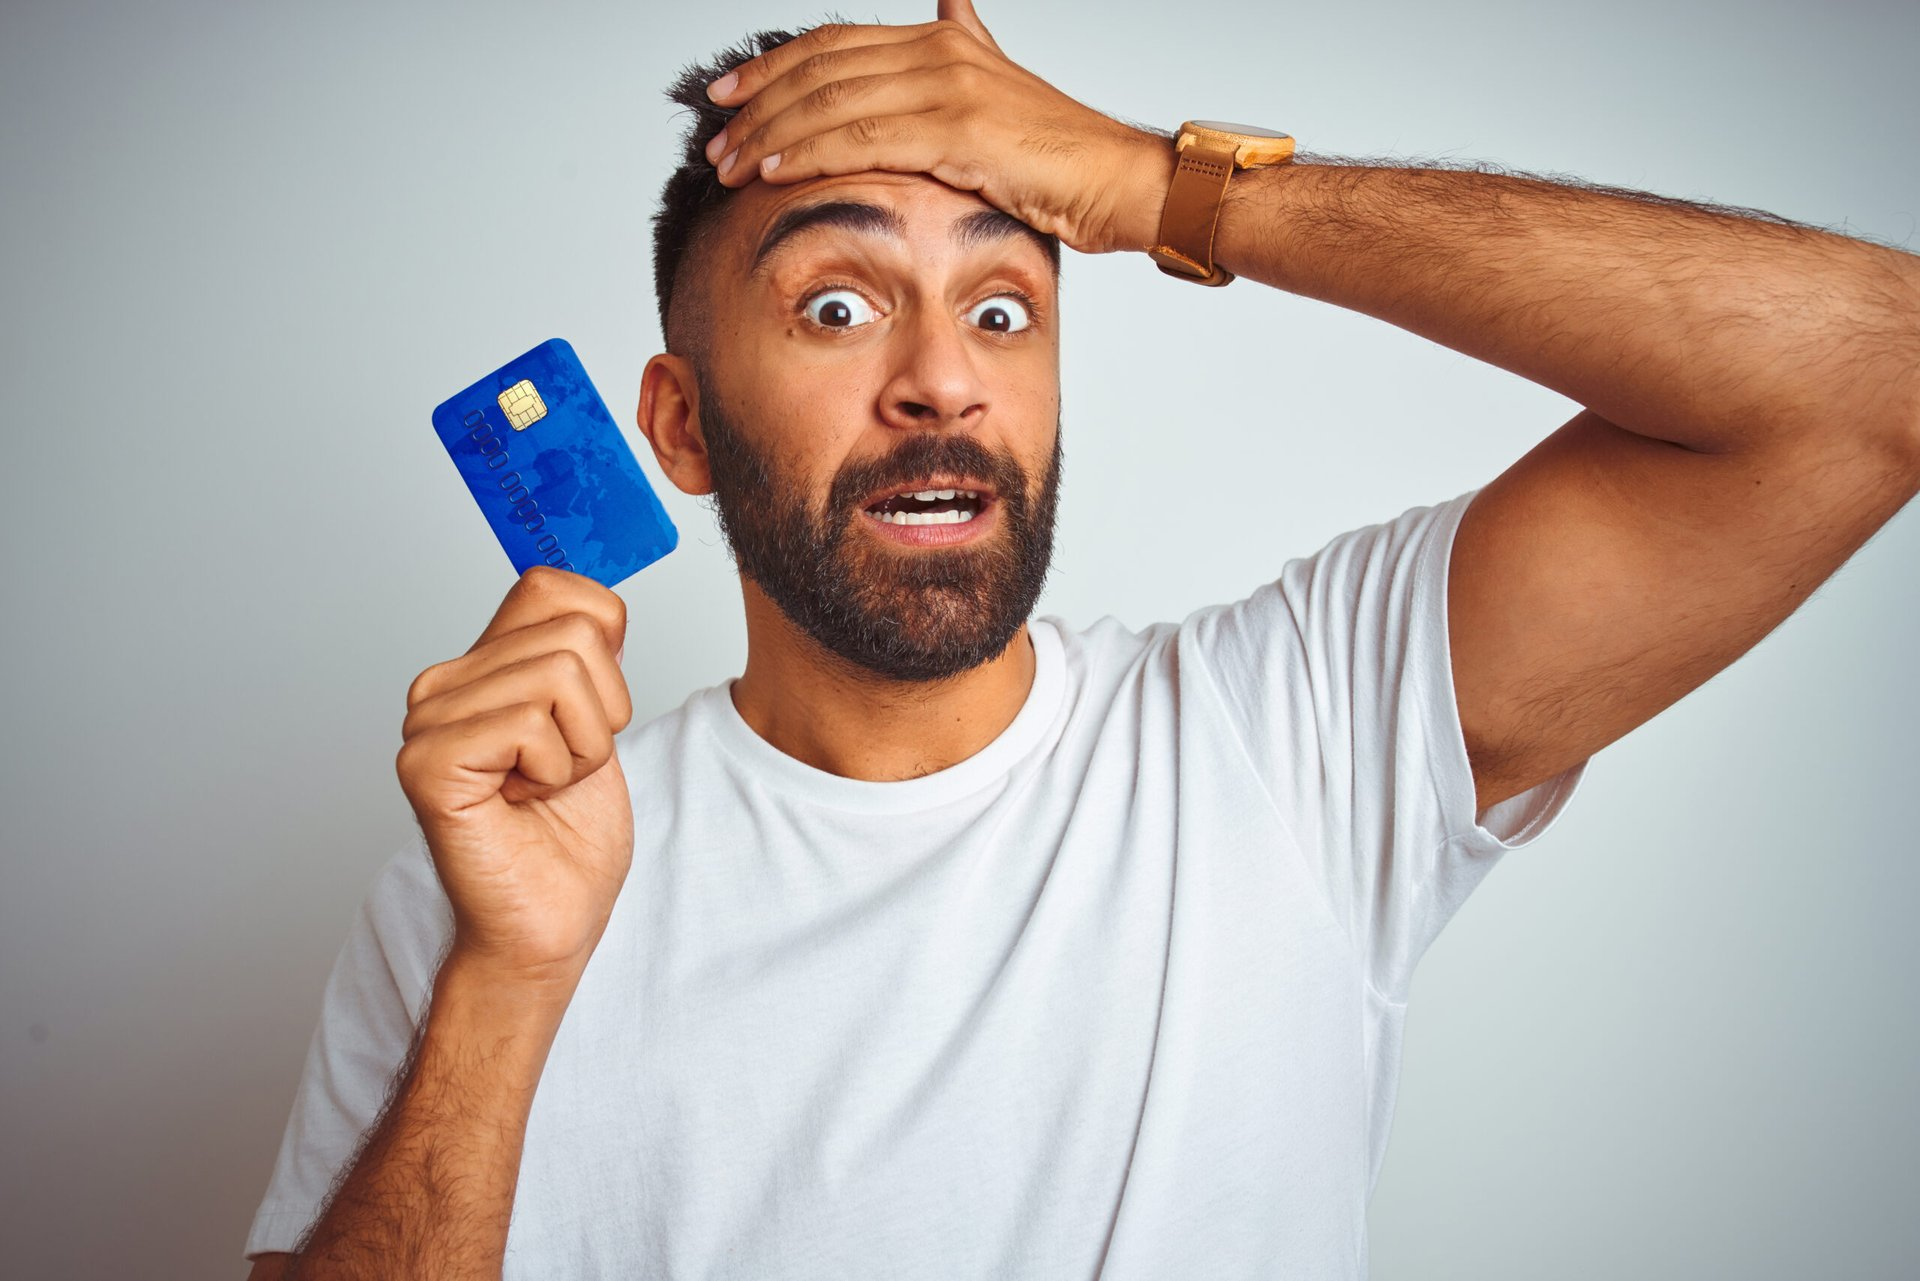 Confused man with credit card